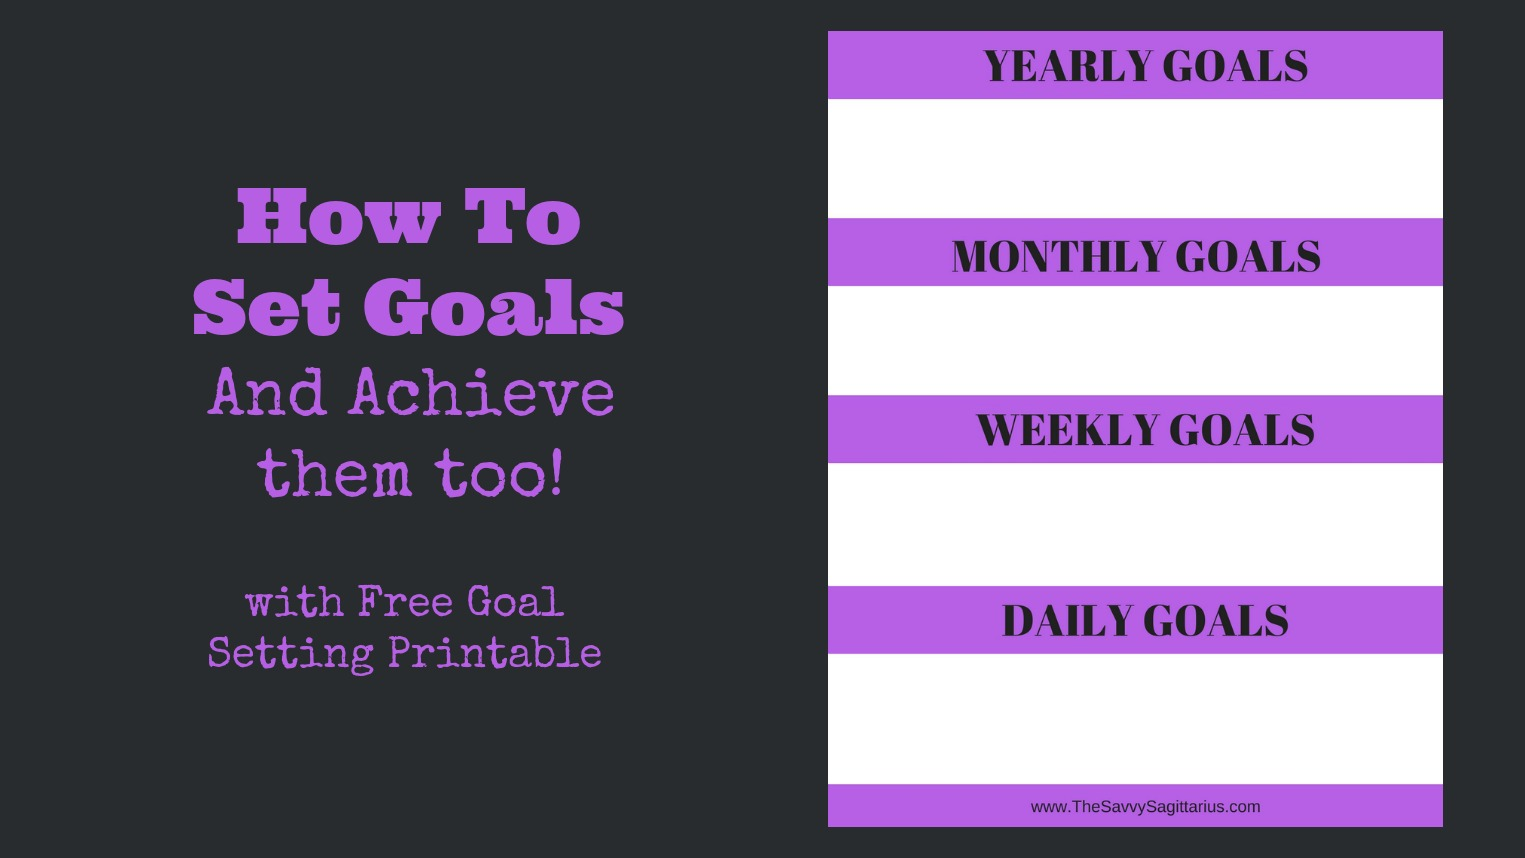 essay on how to set goals and achieve them Why the interviewer is asking this question and samples of the best way to answer - tell me about some of your recent goals and what you did to achieve them.